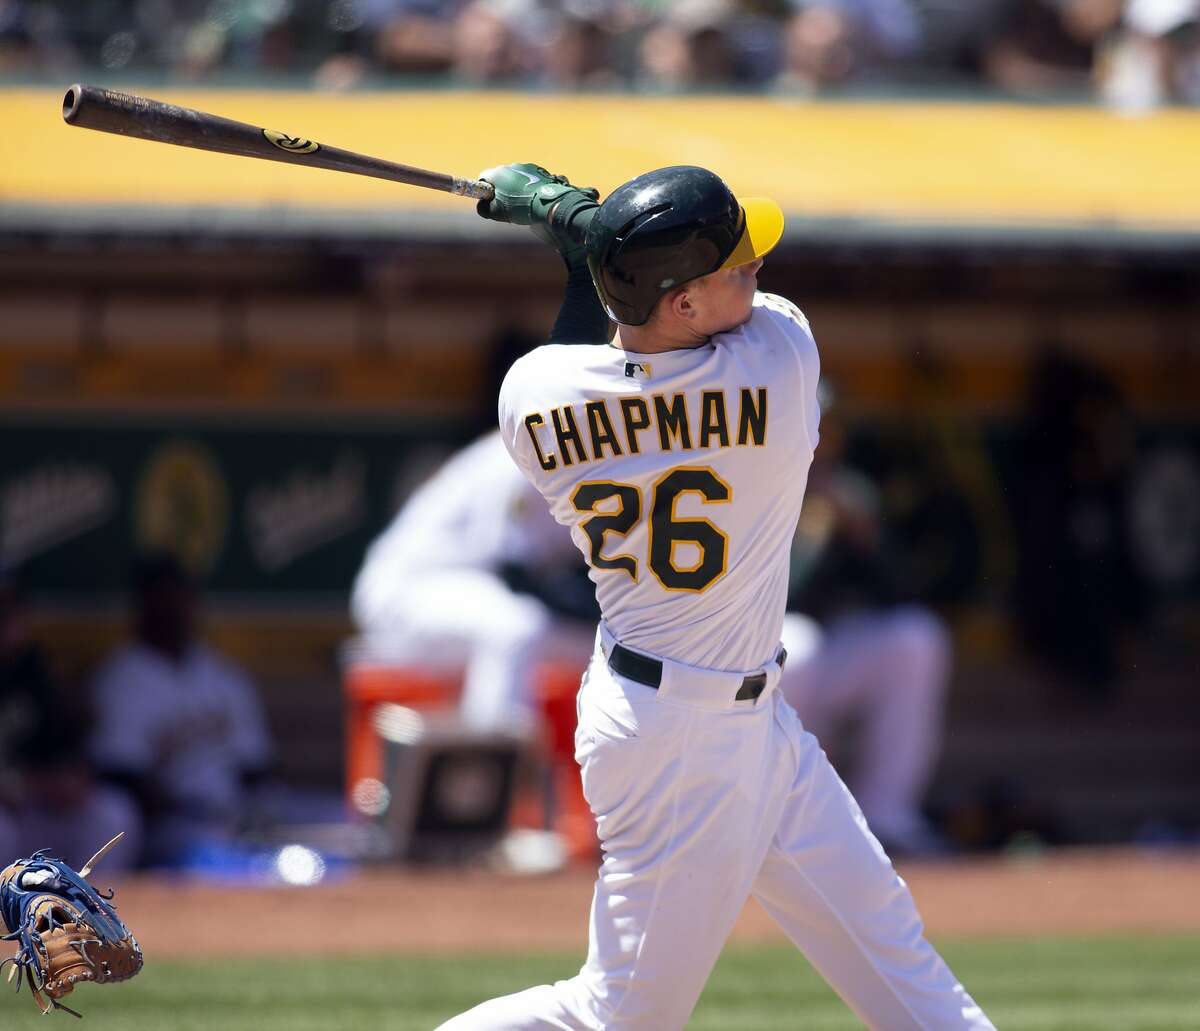 Oakland Athletics Matt Chapman follows through on a solo home run against the Tampa Bay Rays during the seventh inning of a baseball game Thursday, May 31, 2018, in Oakland, Calif. The A's won 7-3. (AP Photo/D. Ross Cameron)